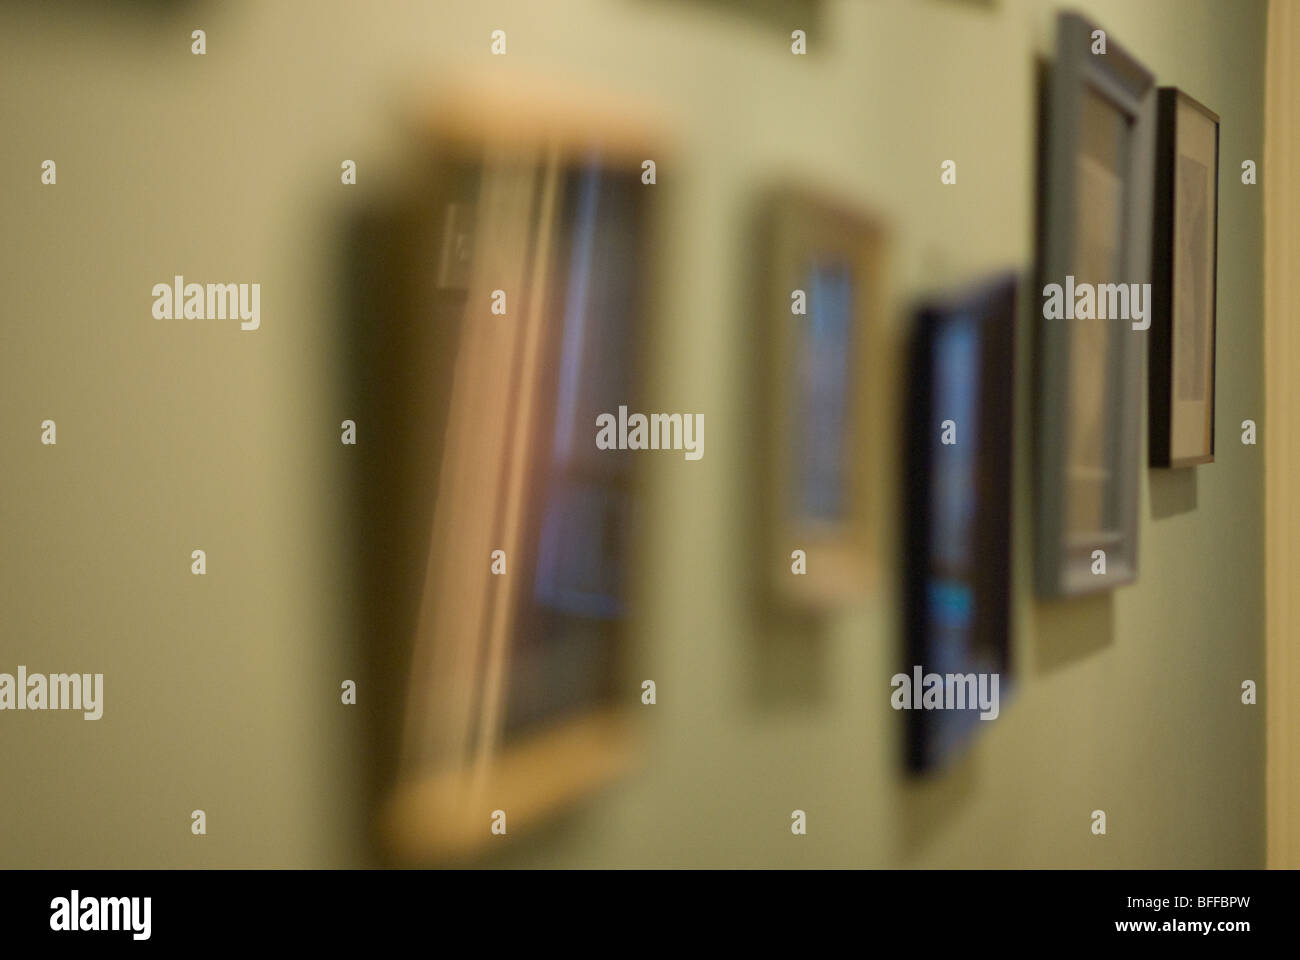 photo frames on a wall - Stock Image